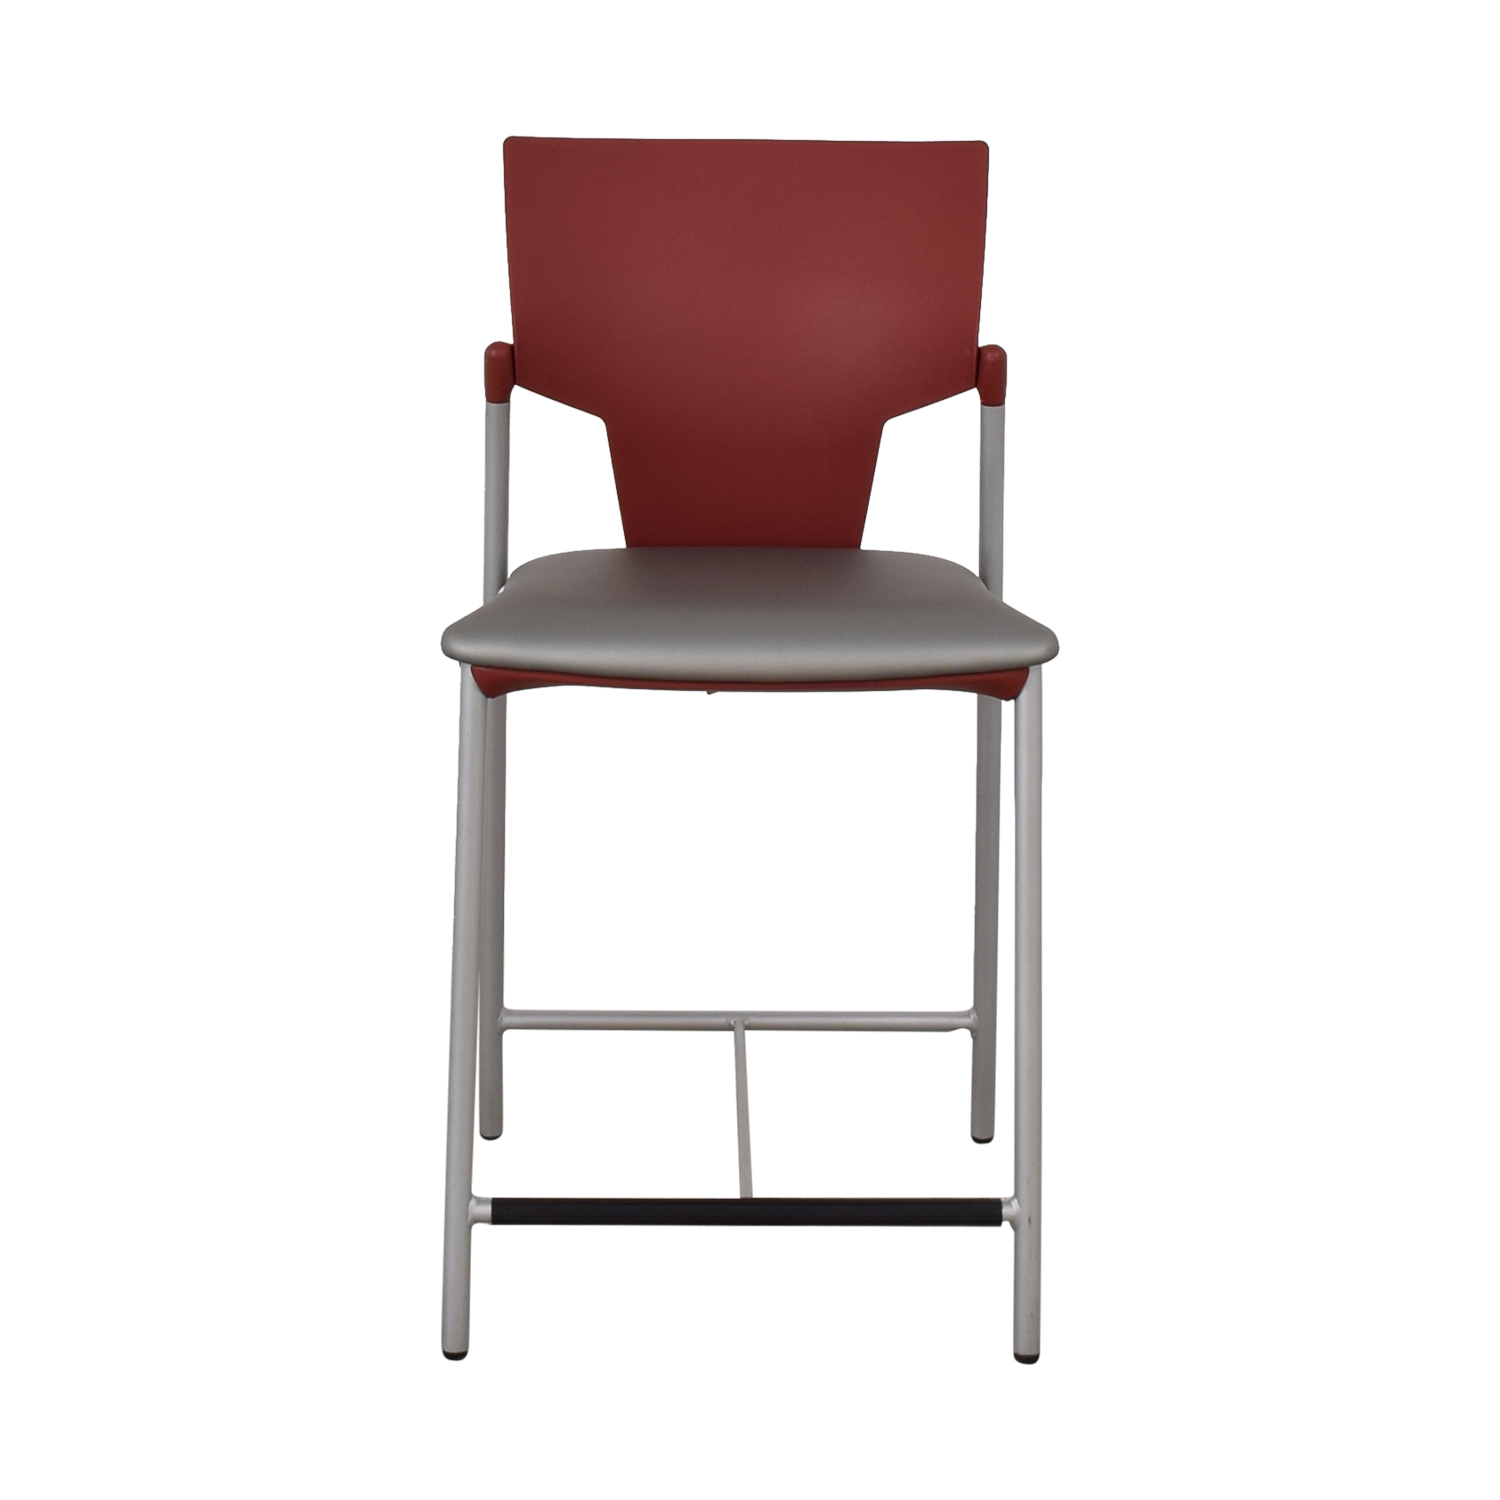 Officeworks Officeworks Bar Stool used